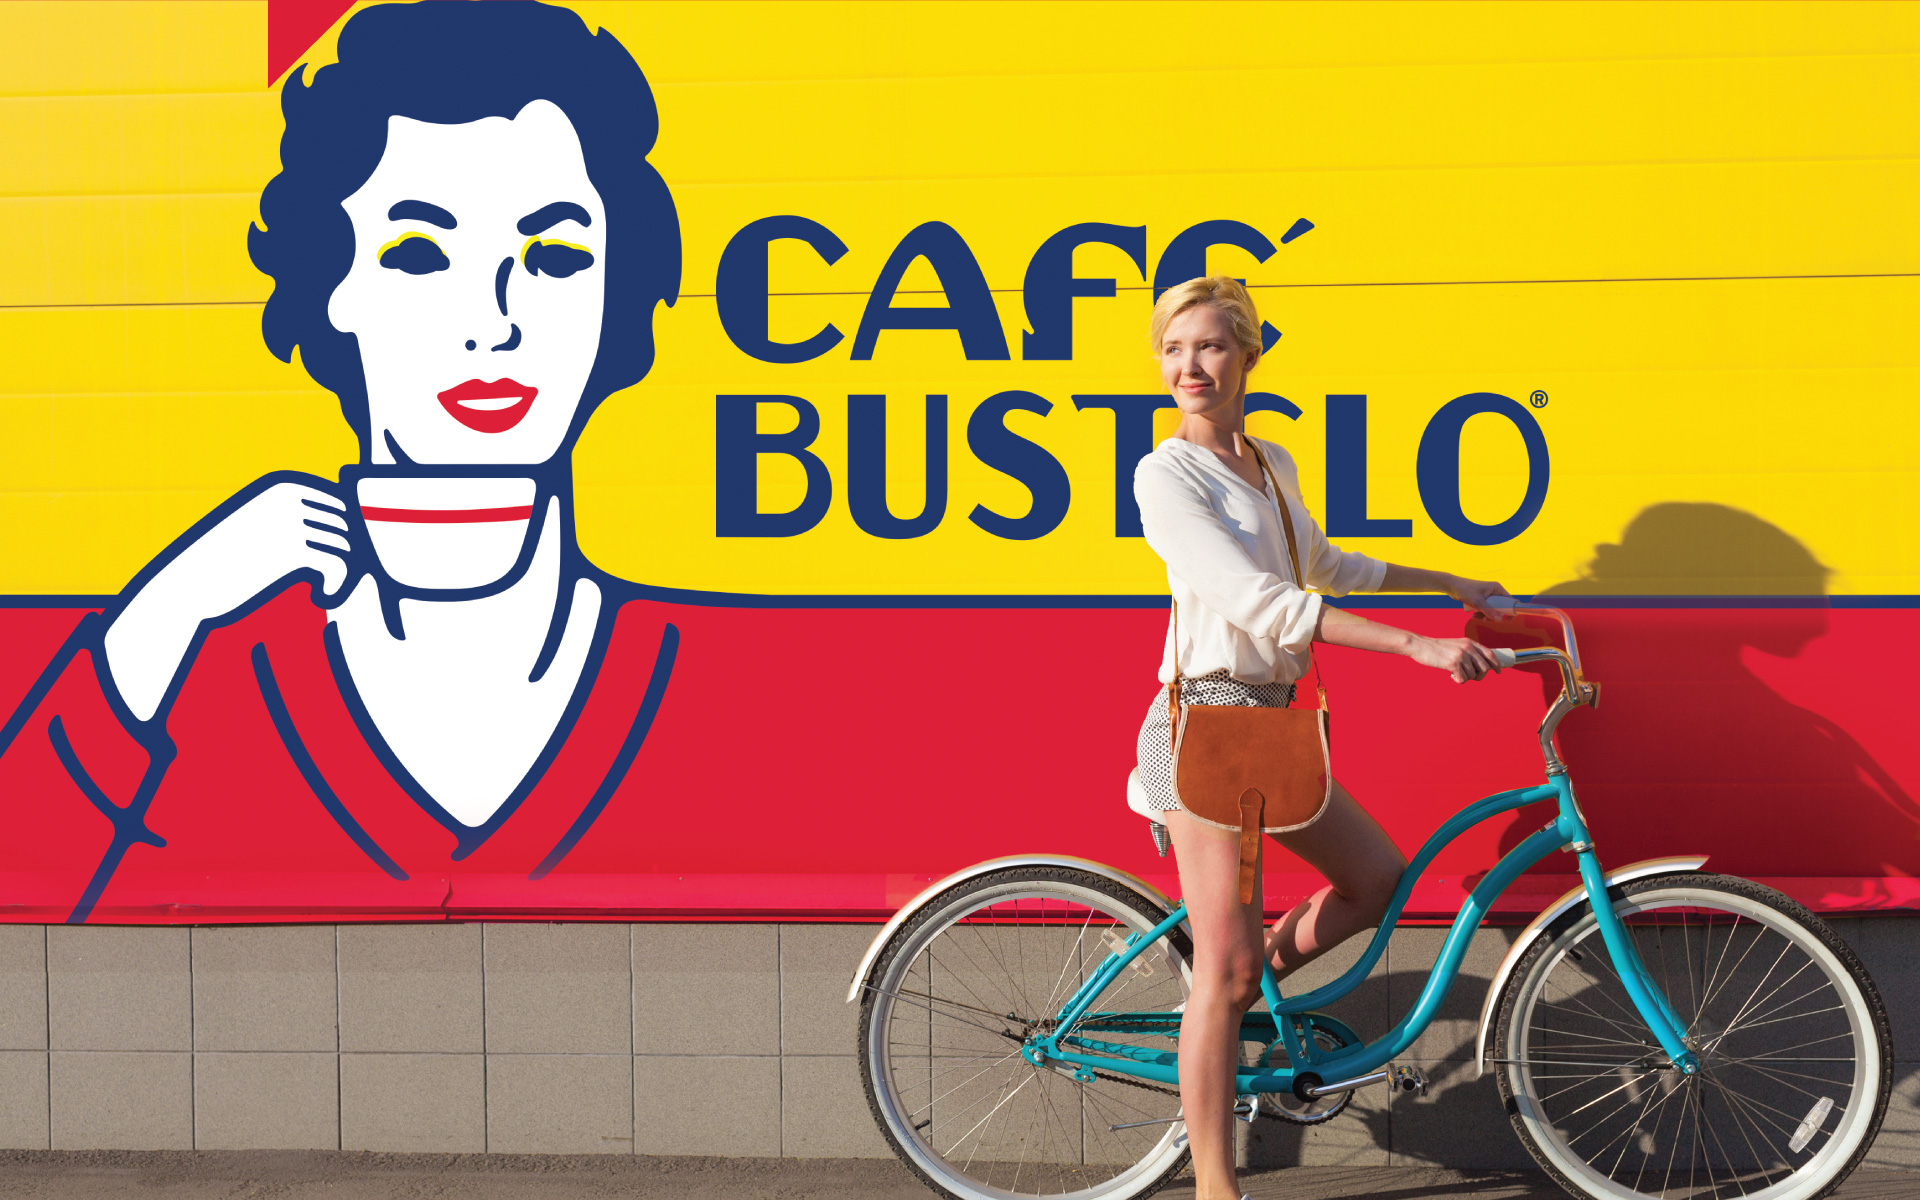 Cafe Bustelo - Brand Activation